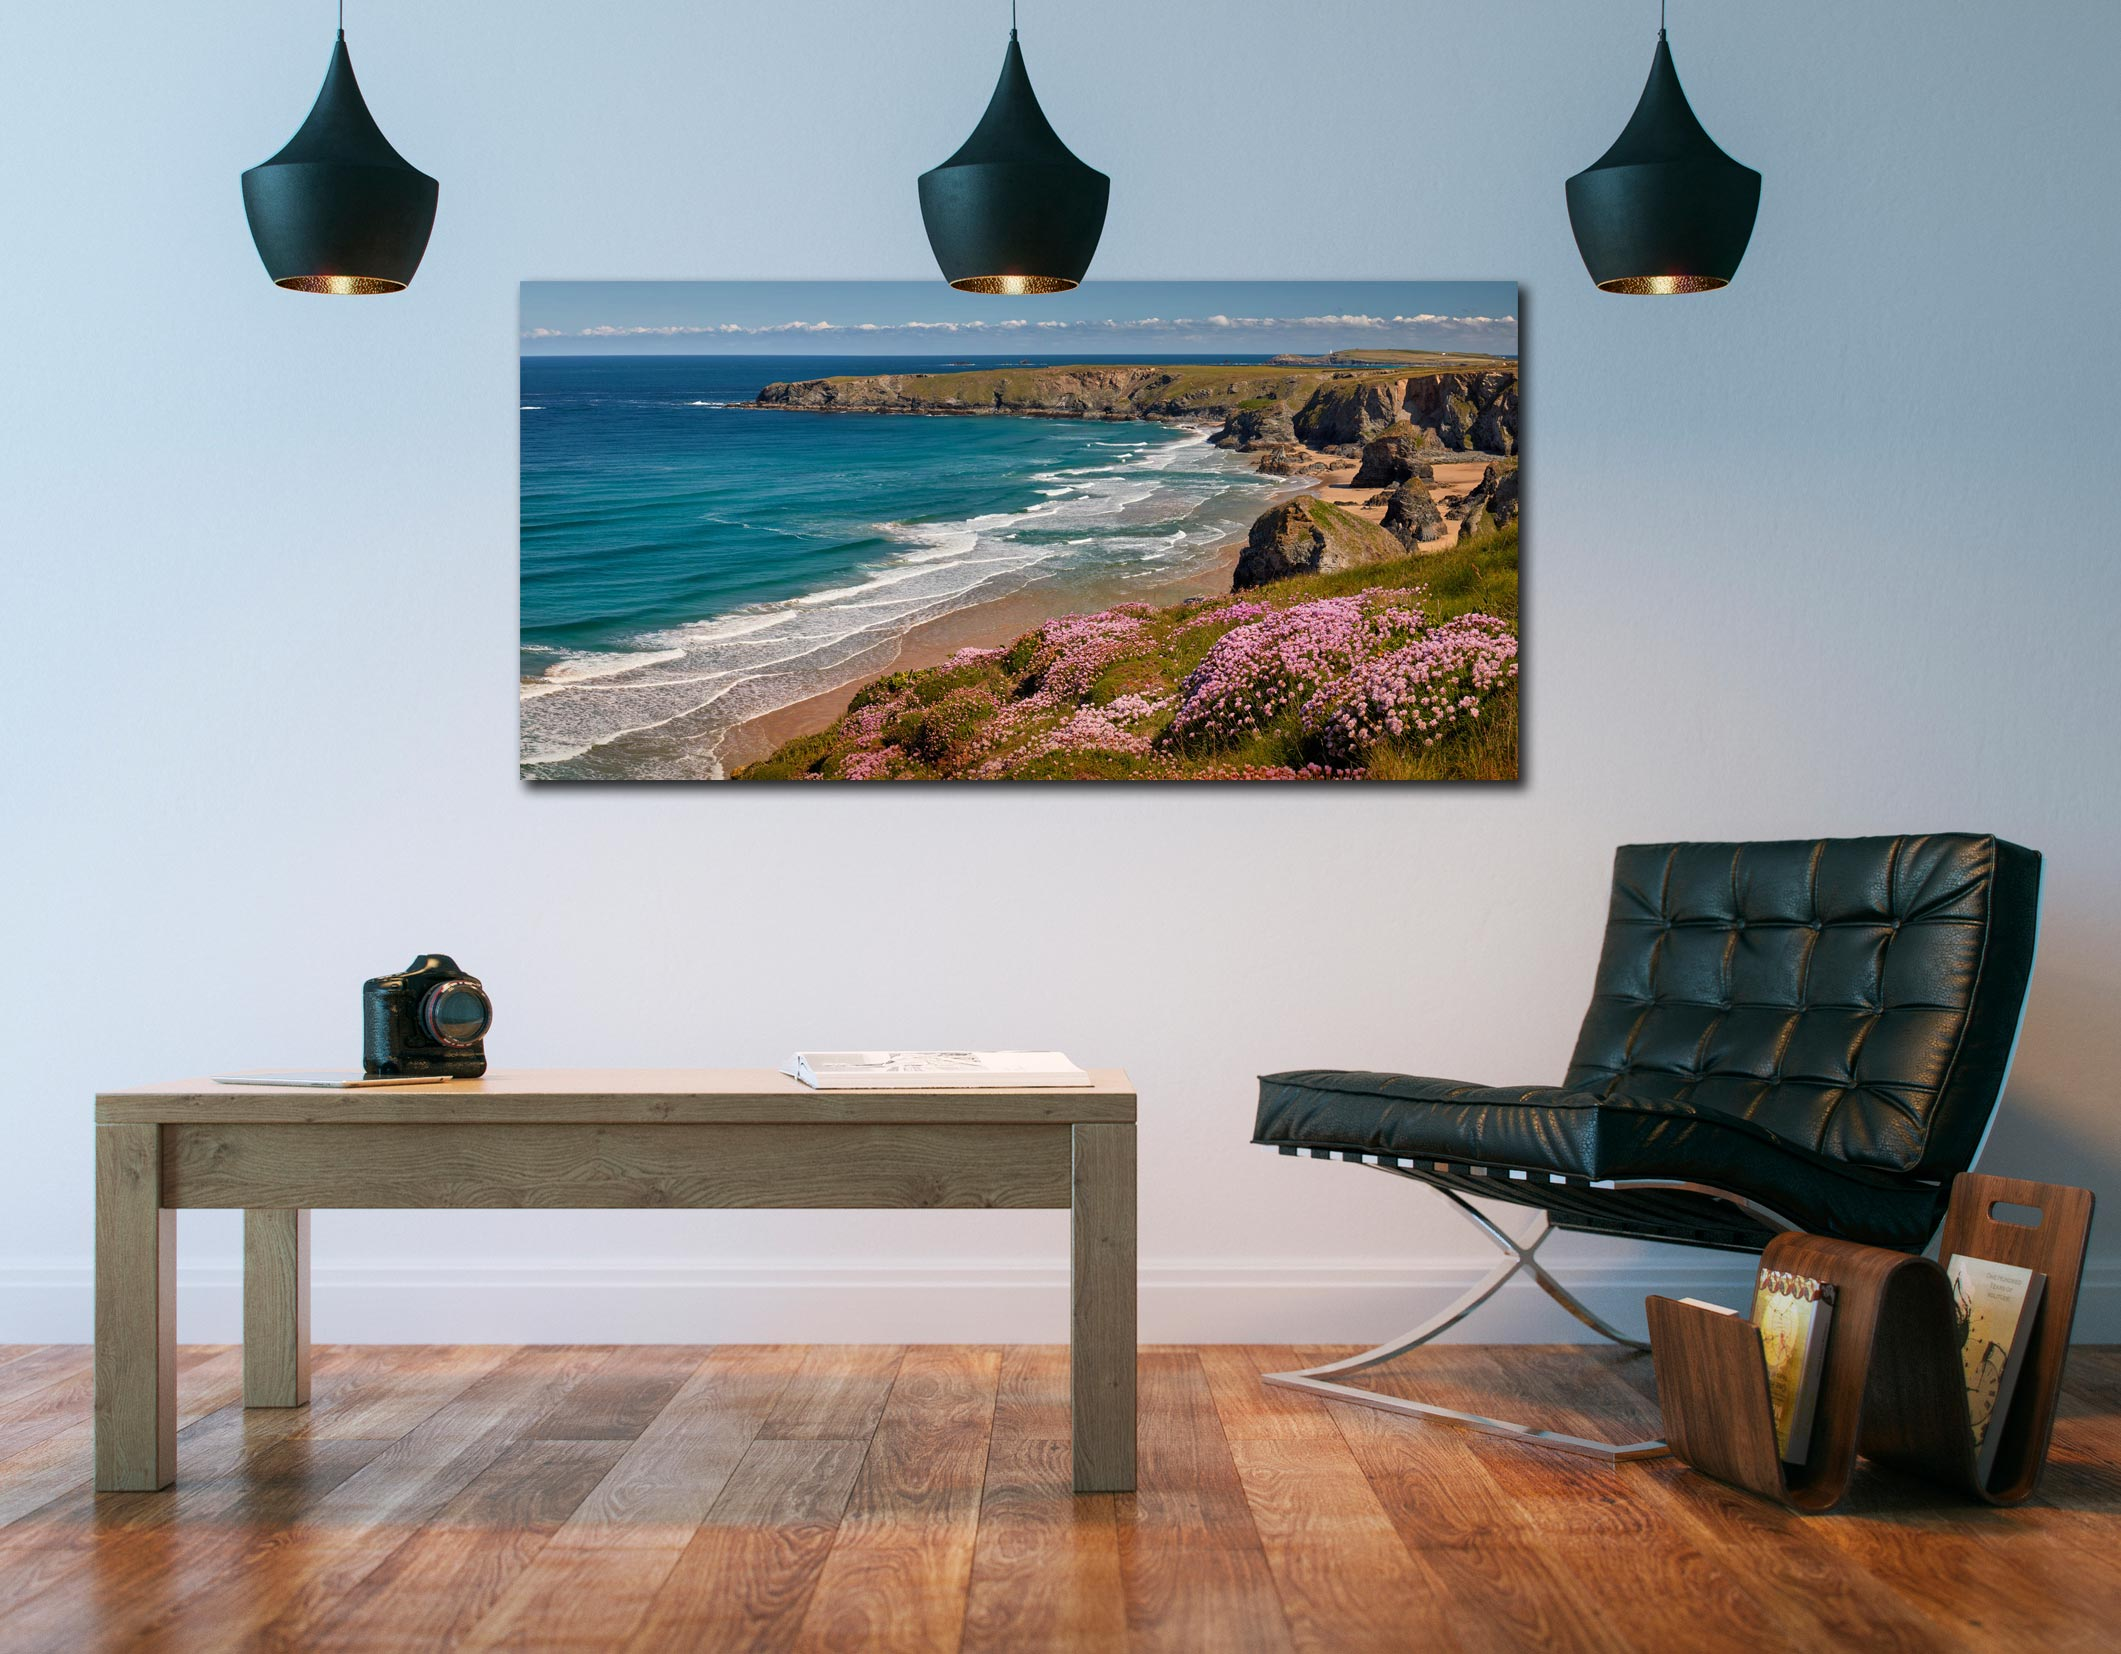 Spring Wildflowers Bedruthan Steps - Print Aluminium Backing With Acrylic Glazing on Wall